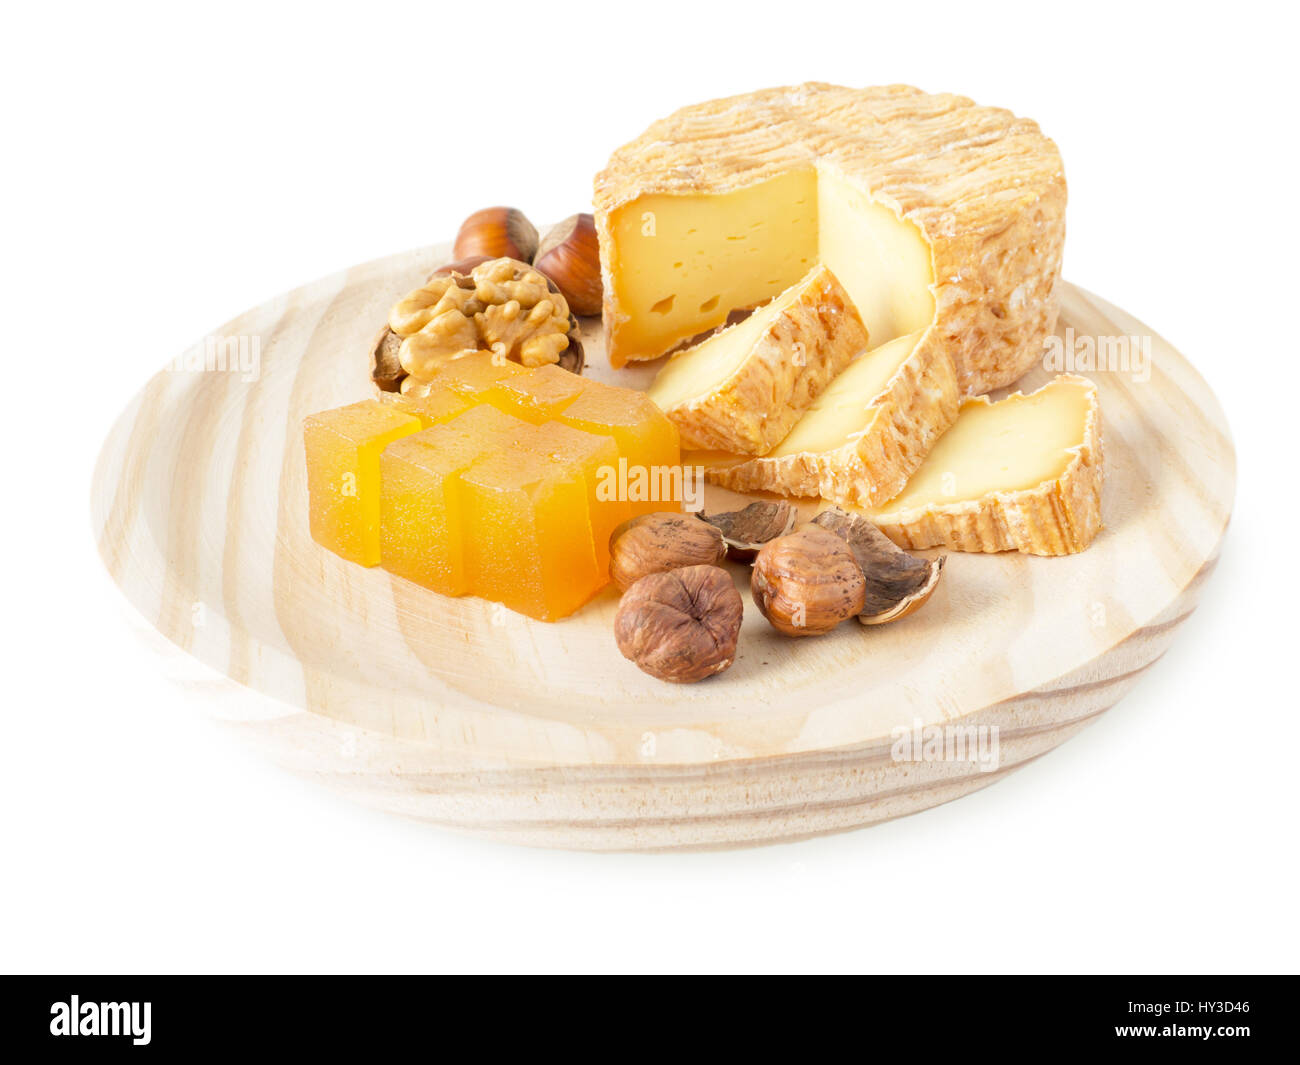 Soft washed-rind cheese, hazelnuts, walnut and marmalade on the textured wooden board isolated on white - Stock Image